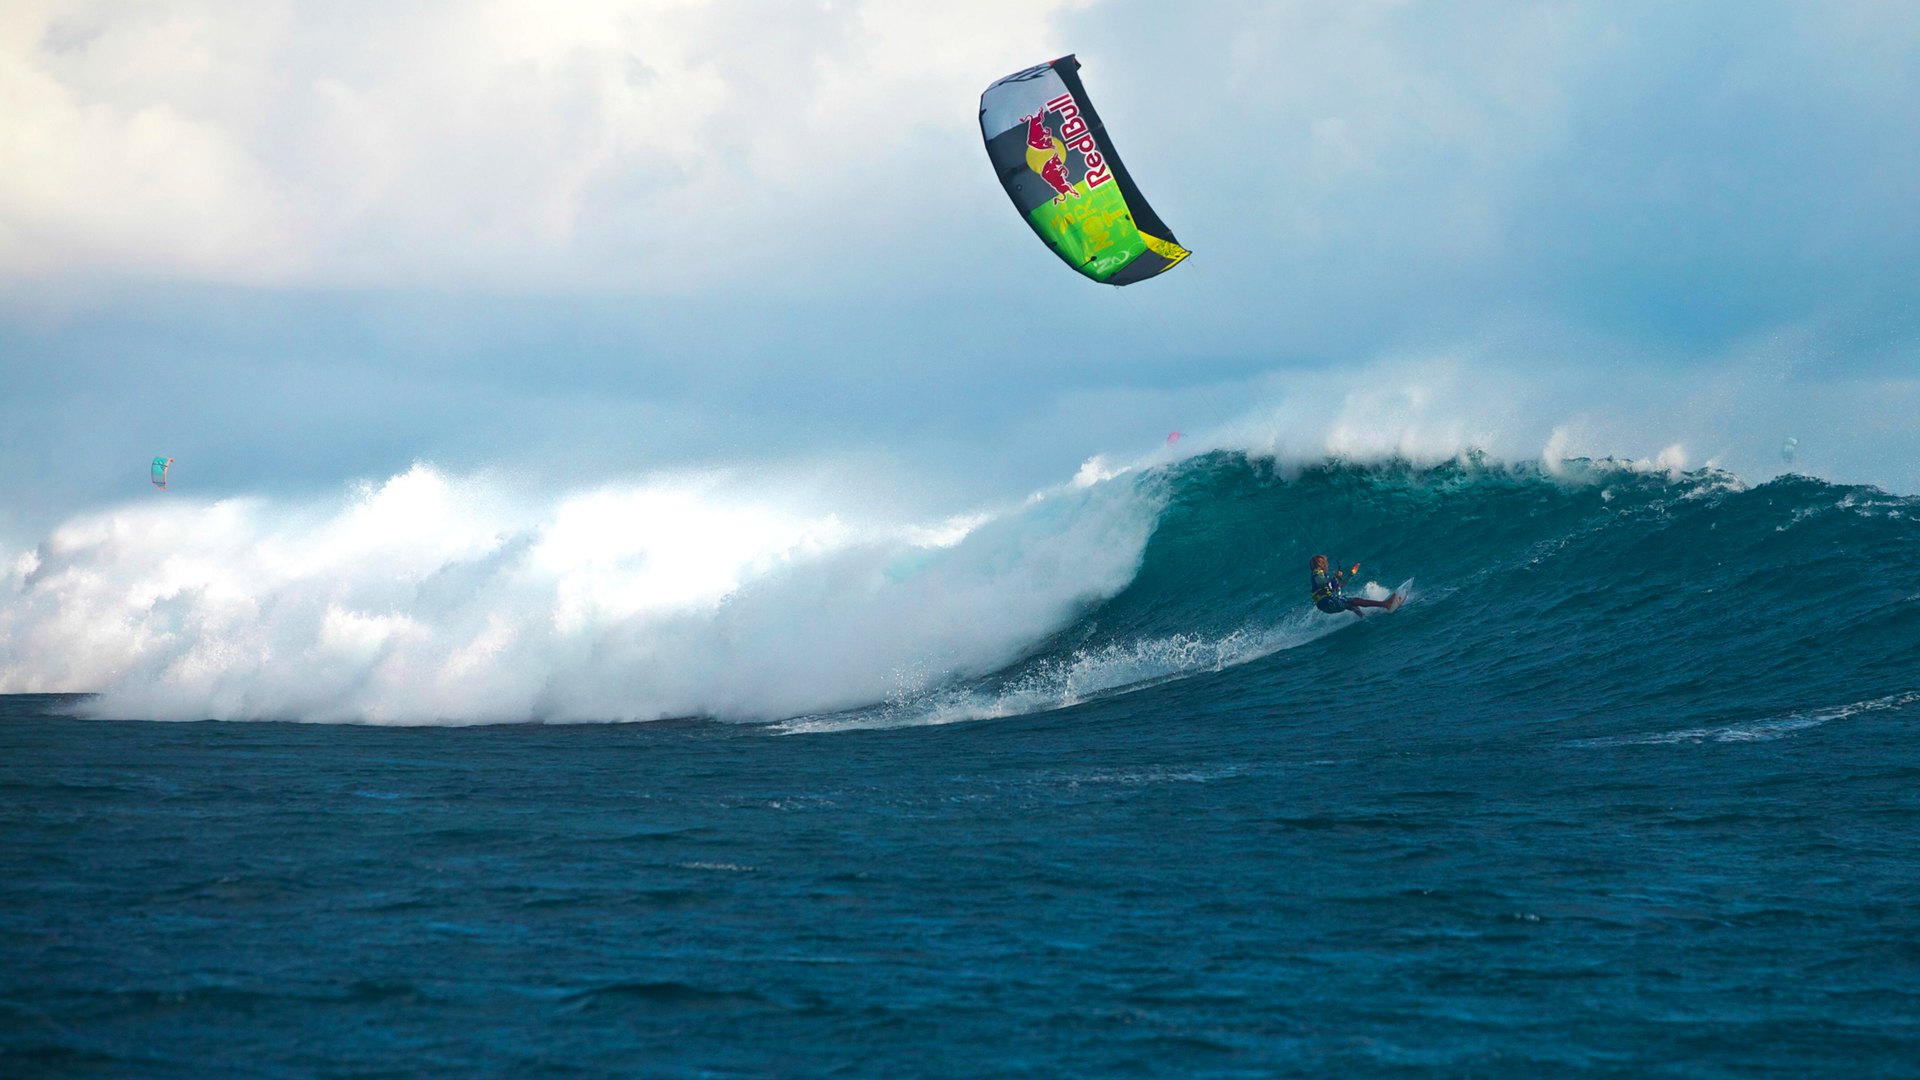 kitesurf wallpaper image - Airton Cozzolino loading up on a wave - in resolution: High Definition - HD 16:9 1920 X 1080